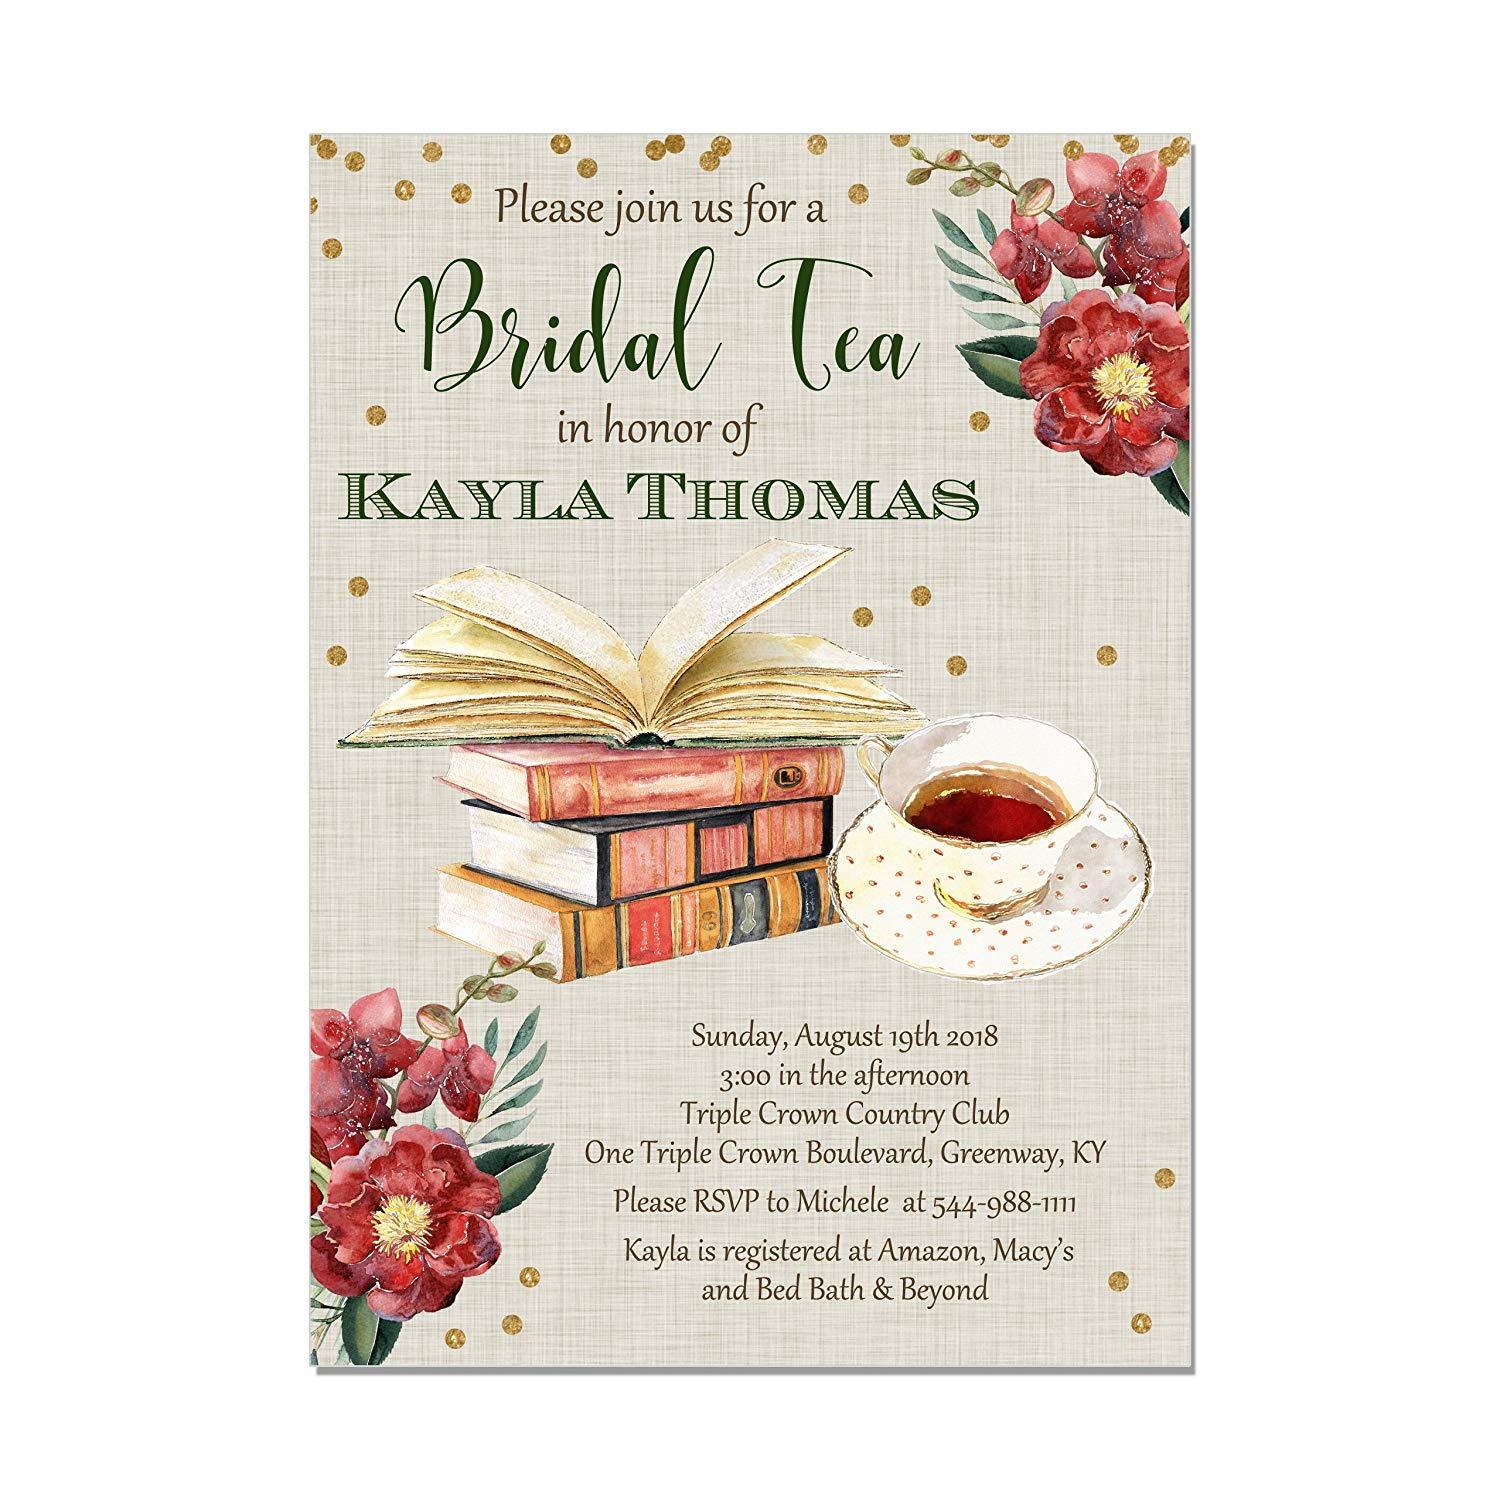 86df692b6f7 Get Quotations · Book Themed Tea Party Bridal Shower Invitations